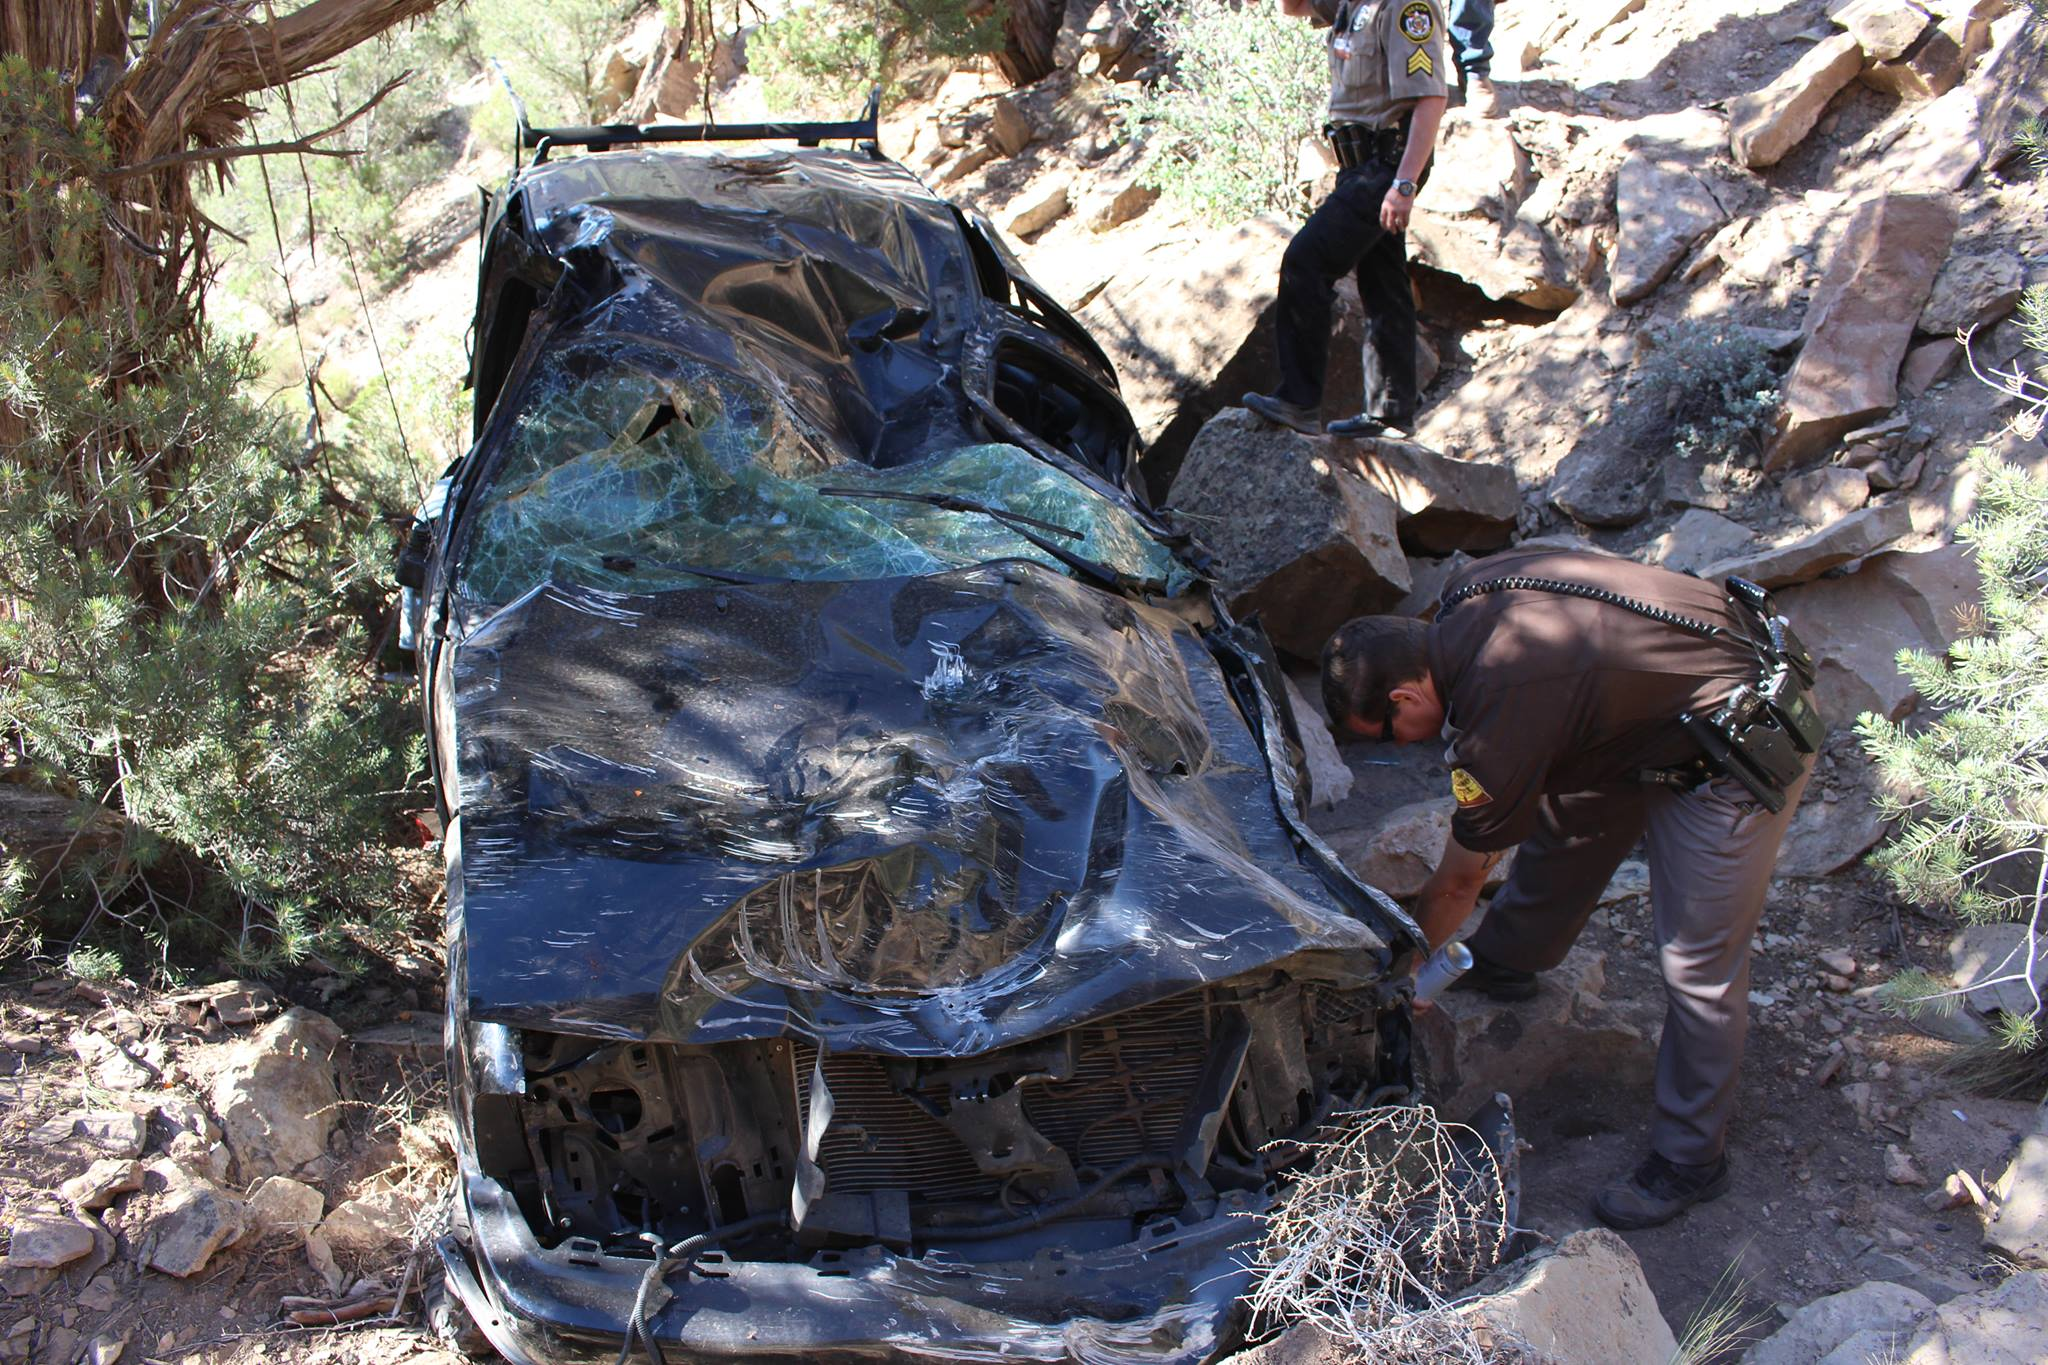 Vehicle at the bottom of ravine near Toquerville Falls; crash involved one fatality and one survivor, Toquerville area, Utah, June 8, 2015 | Photo by Sheldon Demke, St. George News